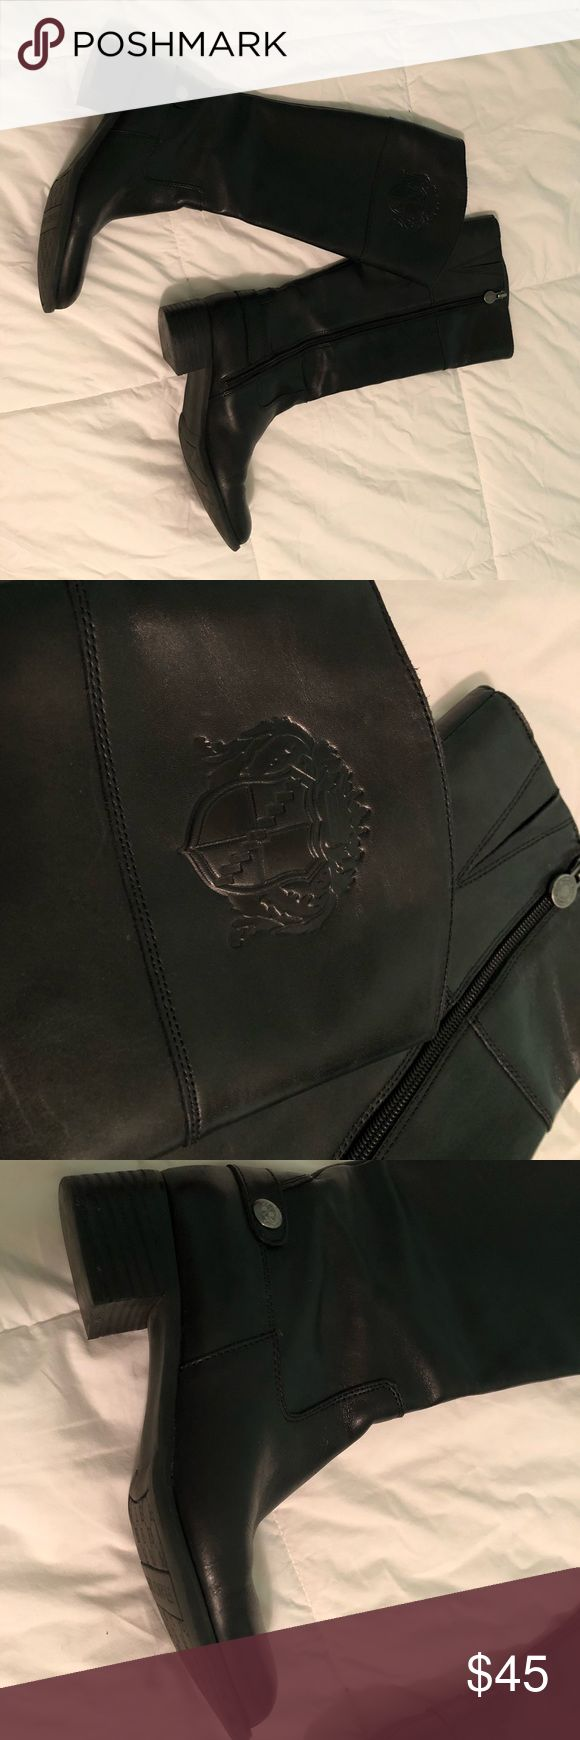 black franco sarto riding boots franco sarto chipper women's riding boot. ***real leather*** normal wear. small knick (picture 6) on inside side of right boot. very comfortable and versatile! Franco Sarto Shoes Heeled Boots